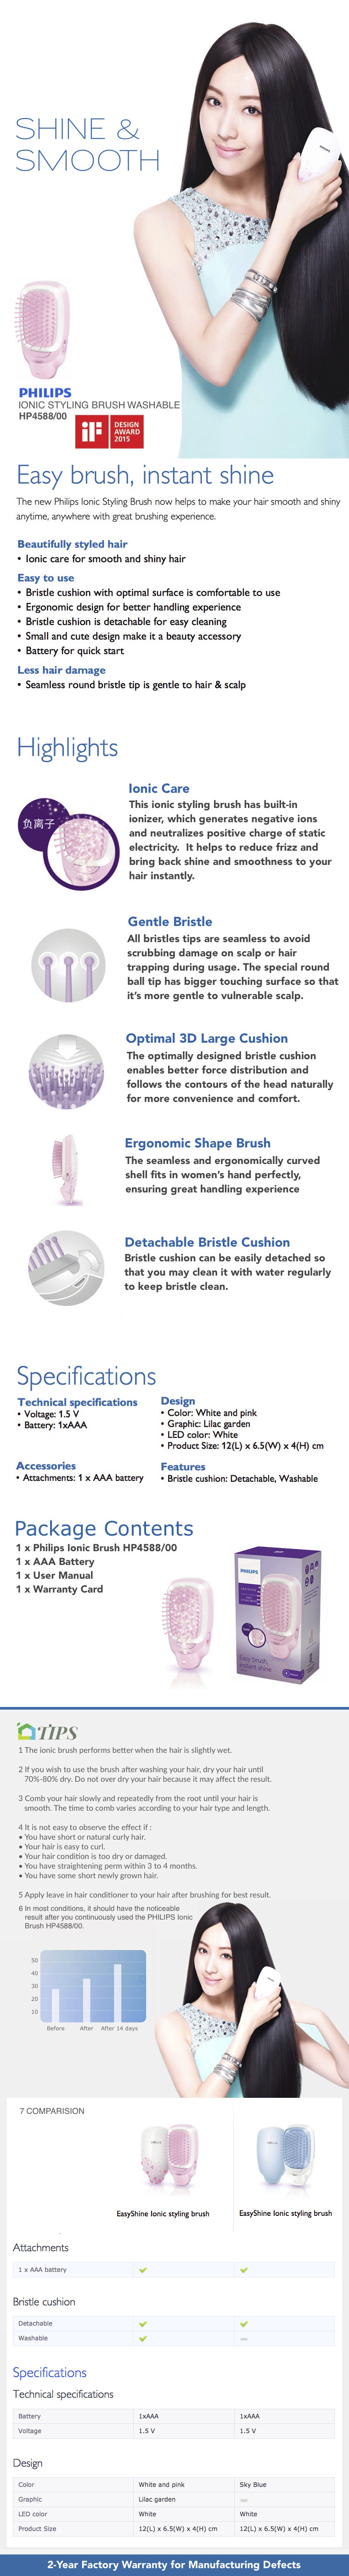 Philips Ionic Care Styling Brush Wshable HP4588/00